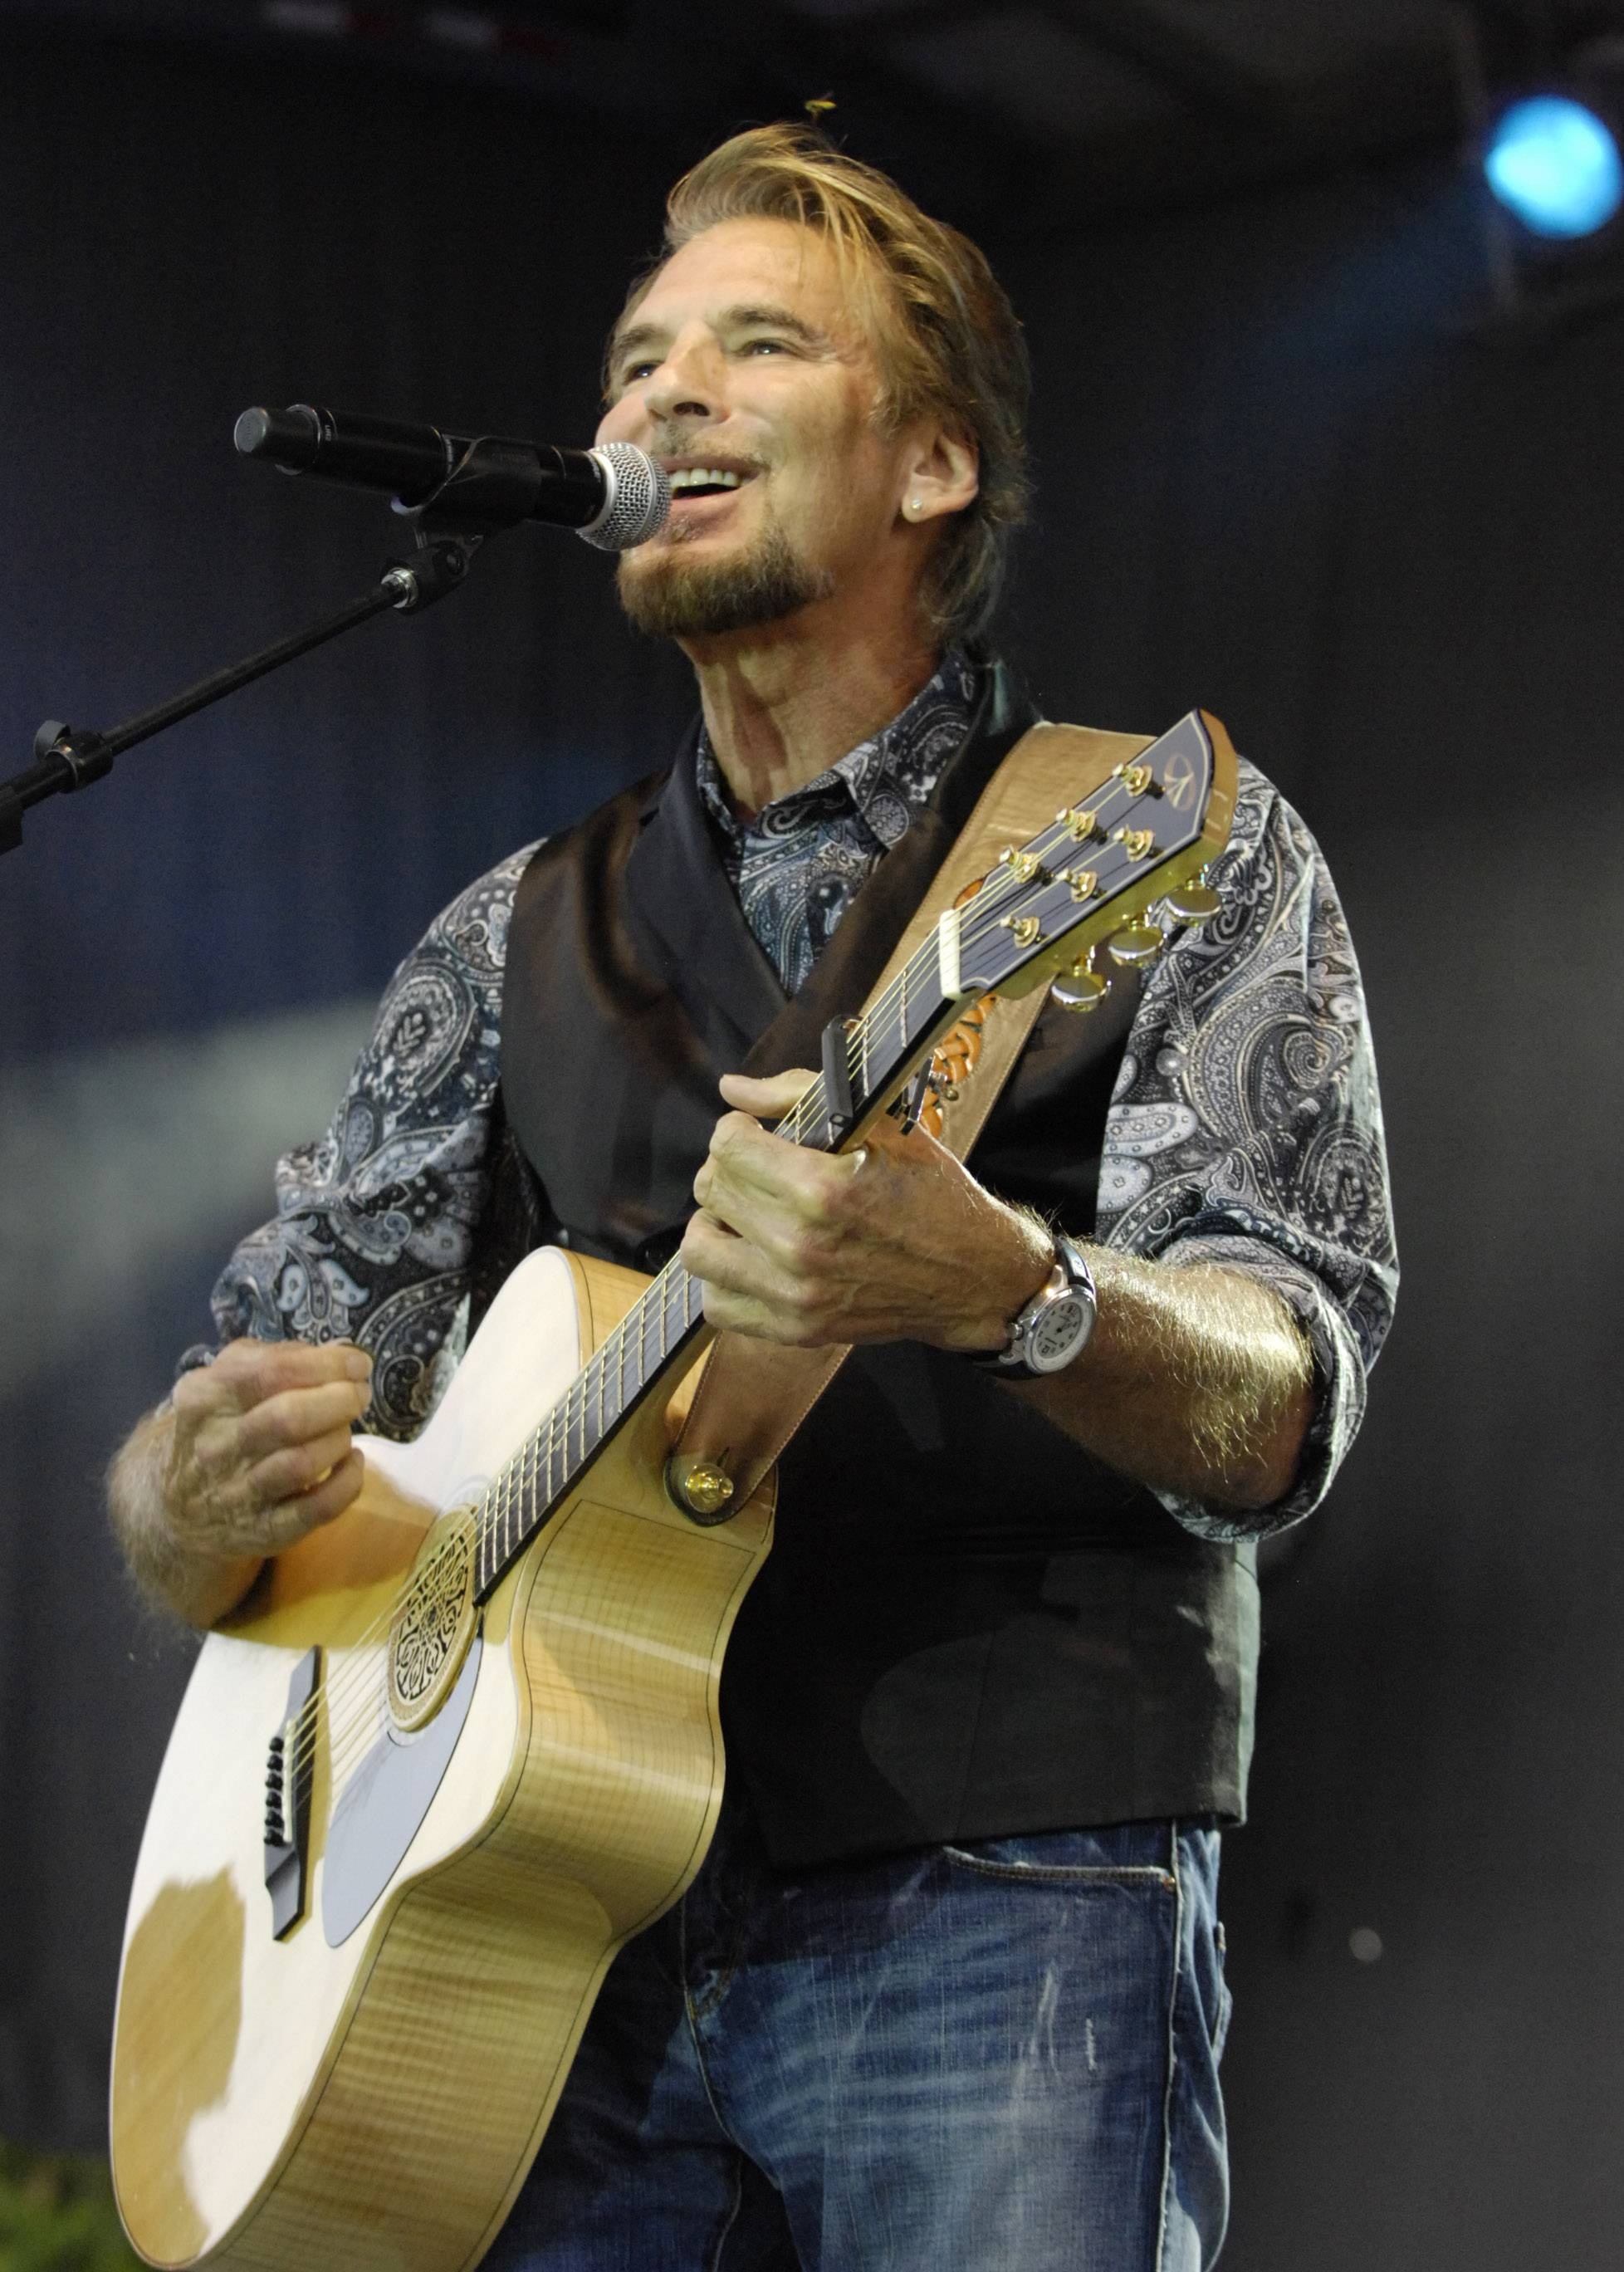 Kenny Loggins performs during the Elk Grove Village Mid-Summer Classic concert series on the Village Green Tuesday.